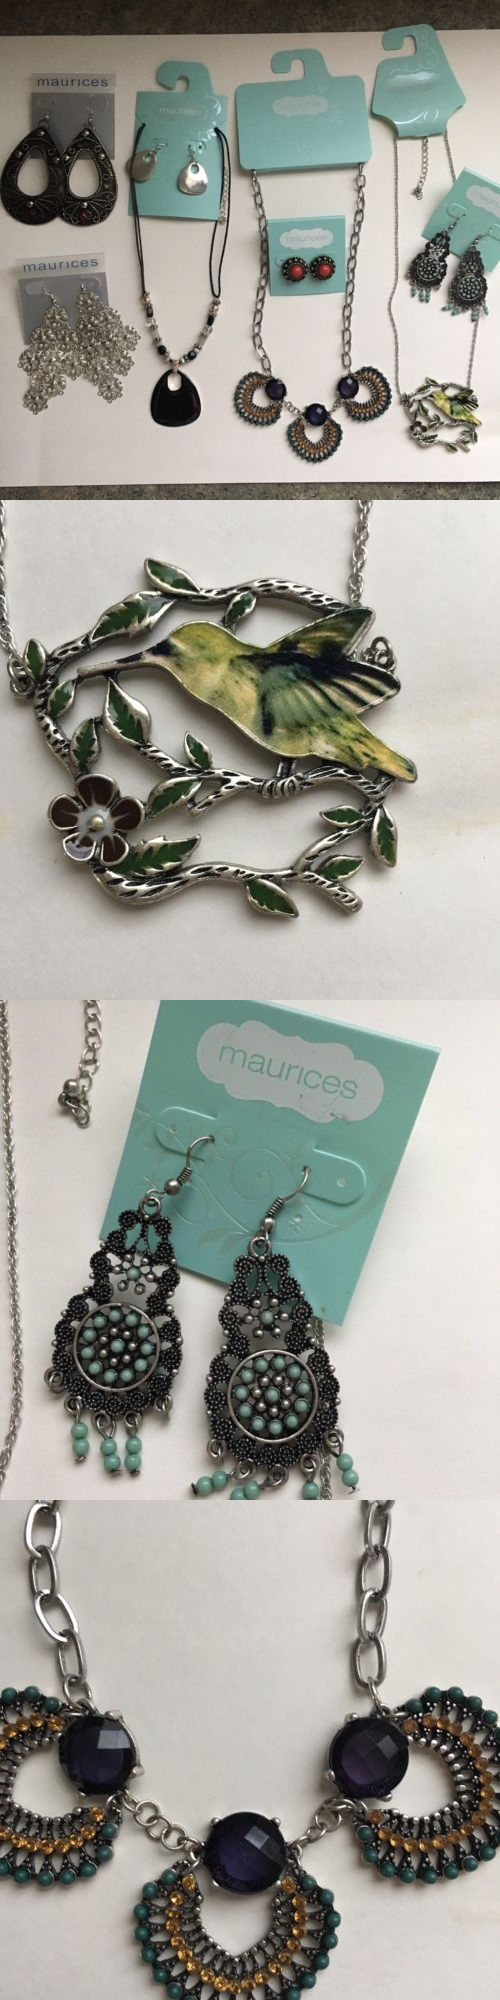 Mixed Items and Lots 10970: New Maurices Women S Jewelry Lot Necklaces Earrings Dangly Casual Elegant Nwt -> BUY IT NOW ONLY: $35 on eBay!